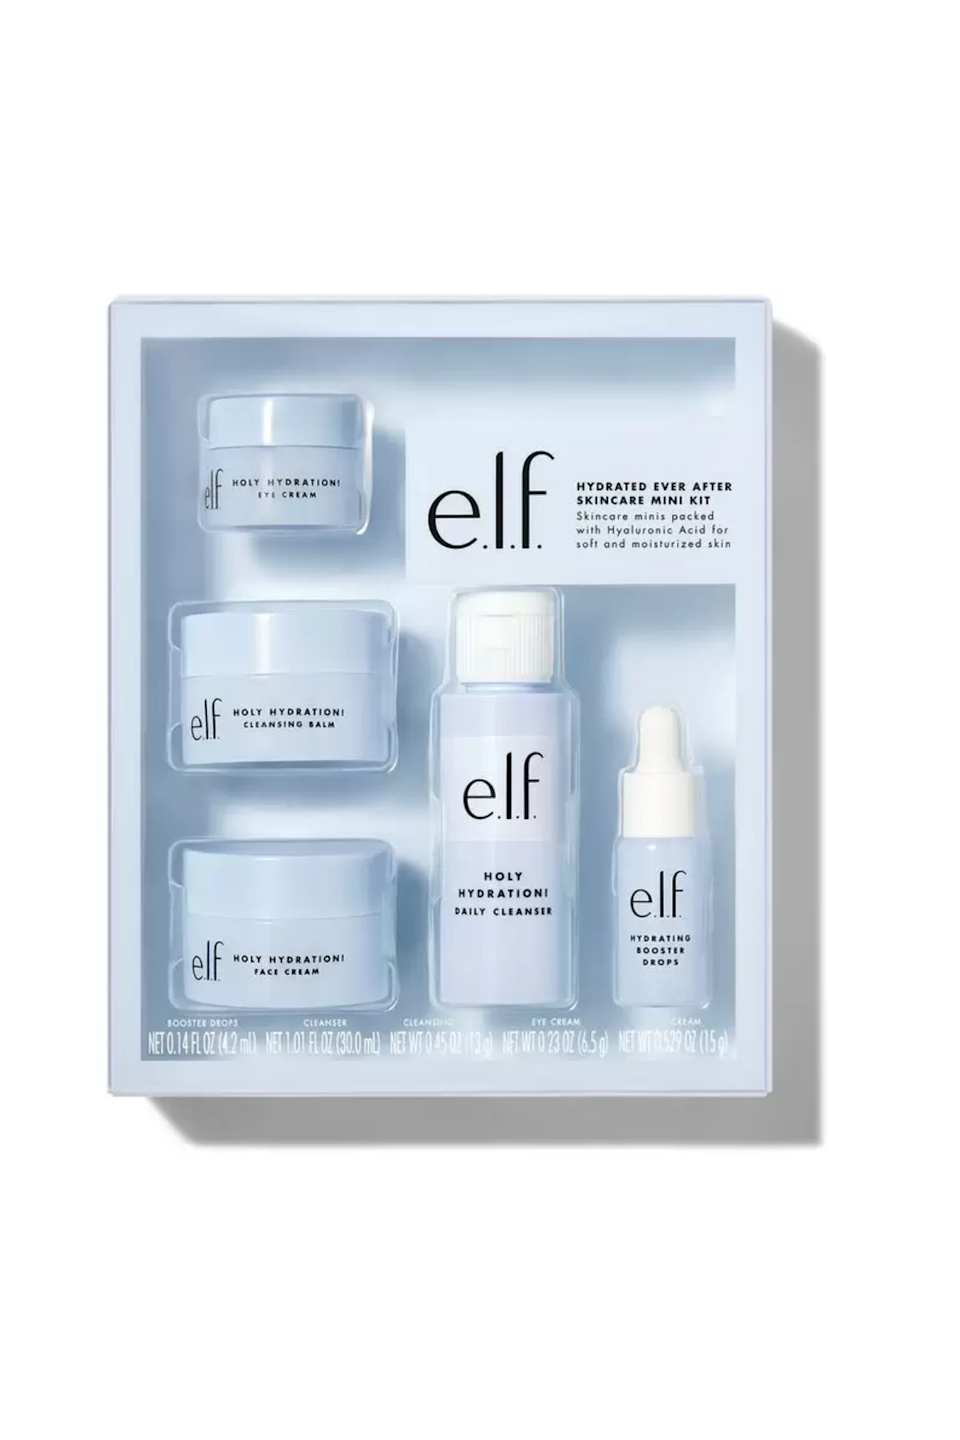 """<p><strong>e.l.f. Cosmetics</strong></p><p>ulta.com</p><p><strong>$20.00</strong></p><p><a href=""""https://go.redirectingat.com?id=74968X1596630&url=https%3A%2F%2Fwww.ulta.com%2Fp%2Fhydrated-ever-after-skincare-mini-kit-pimprod2021474&sref=https%3A%2F%2Fwww.seventeen.com%2Fbeauty%2Fmakeup-skincare%2Fg36866431%2Fbest-elf-makeup-skincare-products%2F"""" rel=""""nofollow noopener"""" target=""""_blank"""" data-ylk=""""slk:Shop Now"""" class=""""link rapid-noclick-resp"""">Shop Now</a></p><p>If you're looking to try out a ton of new skincare in one go, then this is the set for you. For just $20, you can snag some staples from E.L.F.'s Holy Hydration collection, including a daily cleanser, moisturizer, eye cream, cleansing balm and serum drops.</p>"""